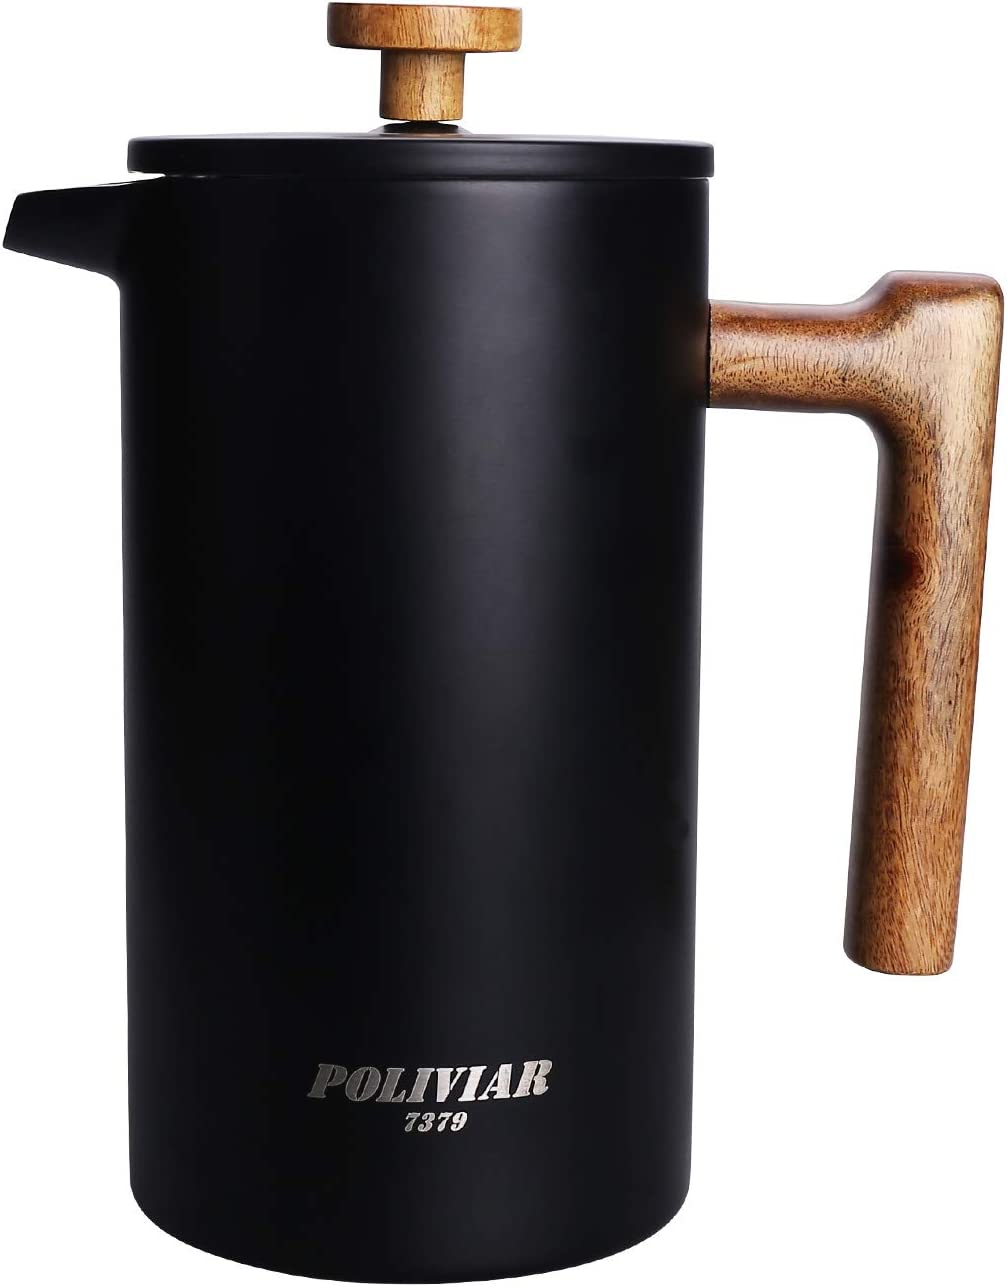 POLIVIAR French Press Coffee Maker, 34 oz Coffee Press with Teak Wood Handle, Double Wall Insulation & Dual- Filter Screen, Food Grade Stainless Steel for Good Coffe and Tea (Vintage)